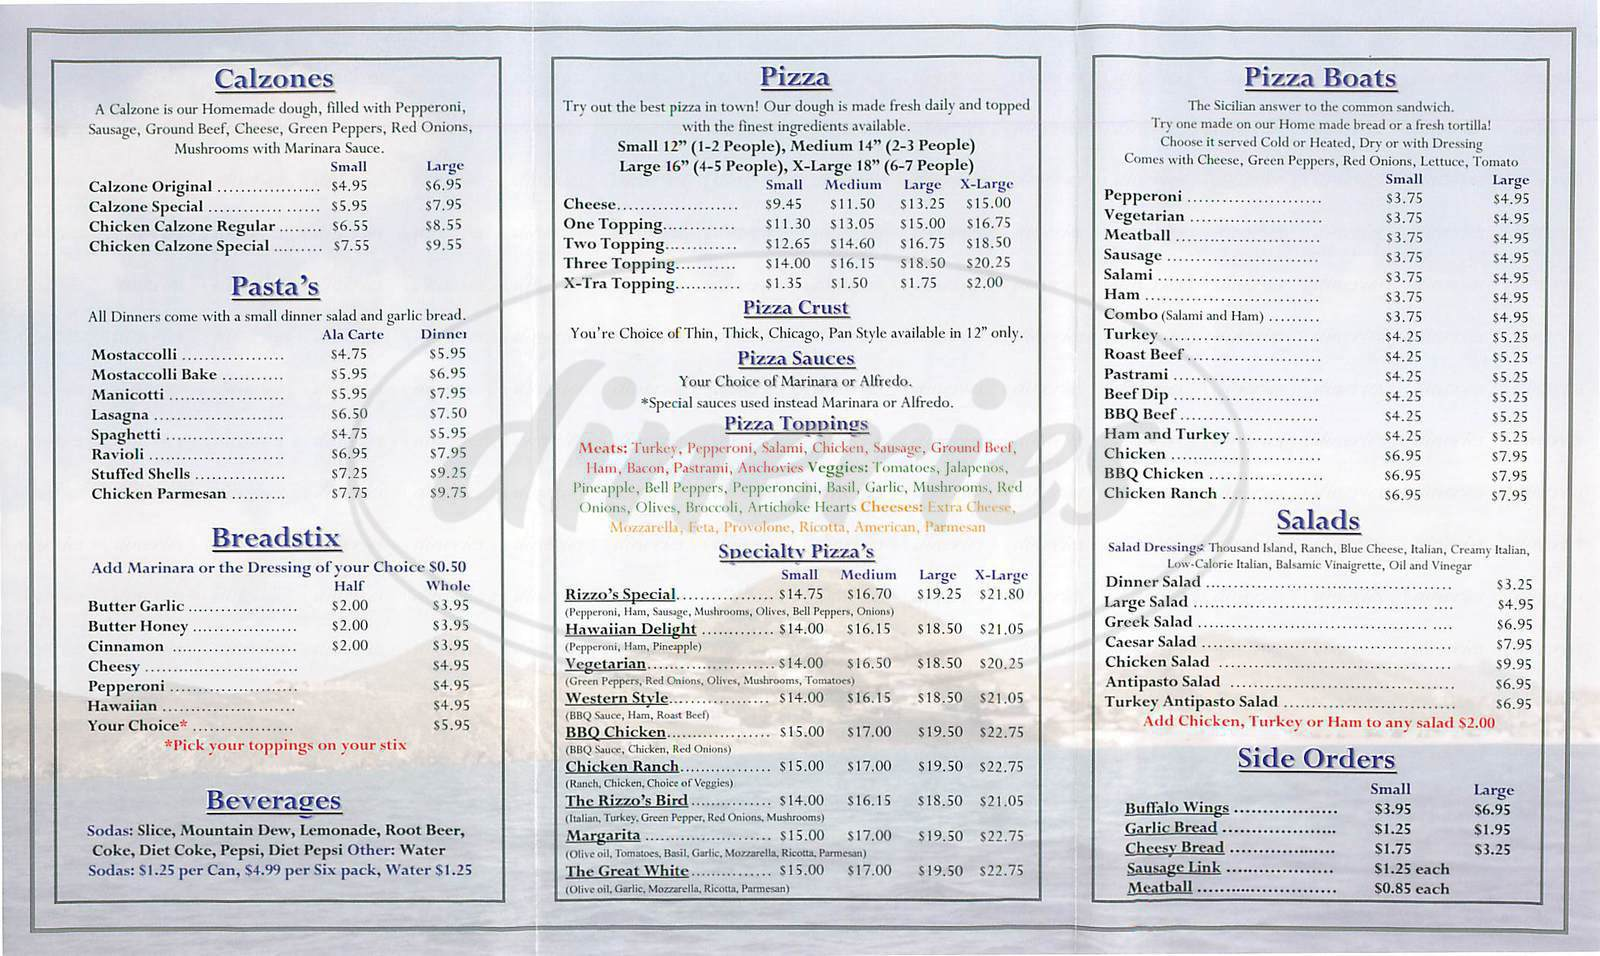 menu for Rizzos Pizzeria